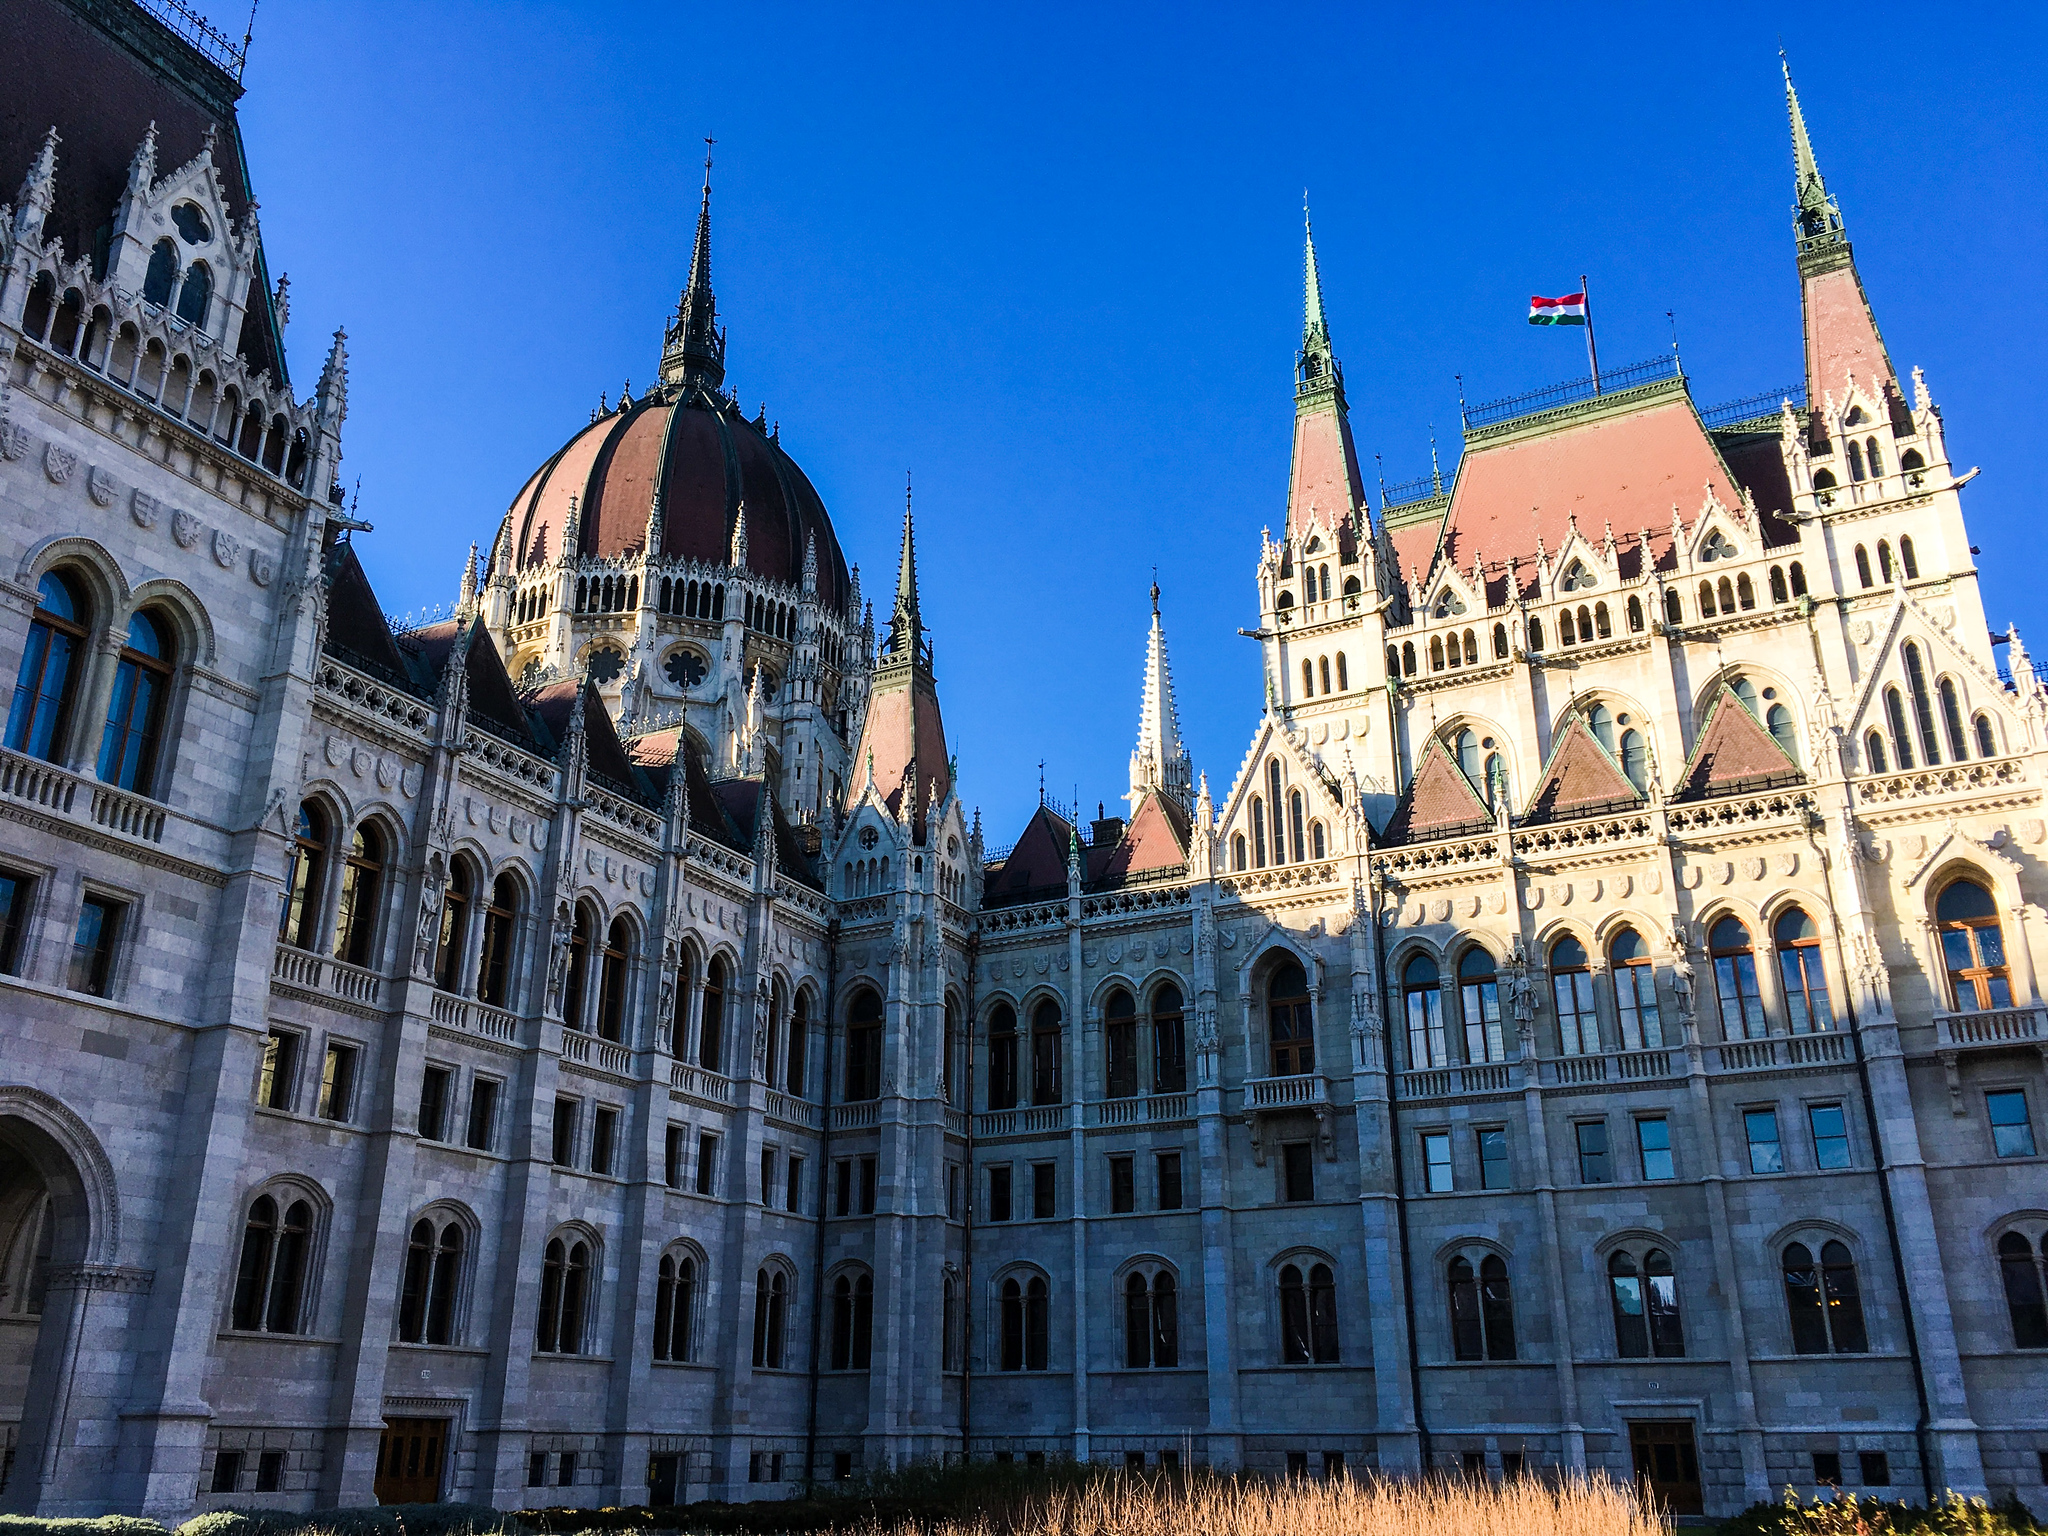 for your backpacking europe itinerary 2 weeks add the parliament in budapest